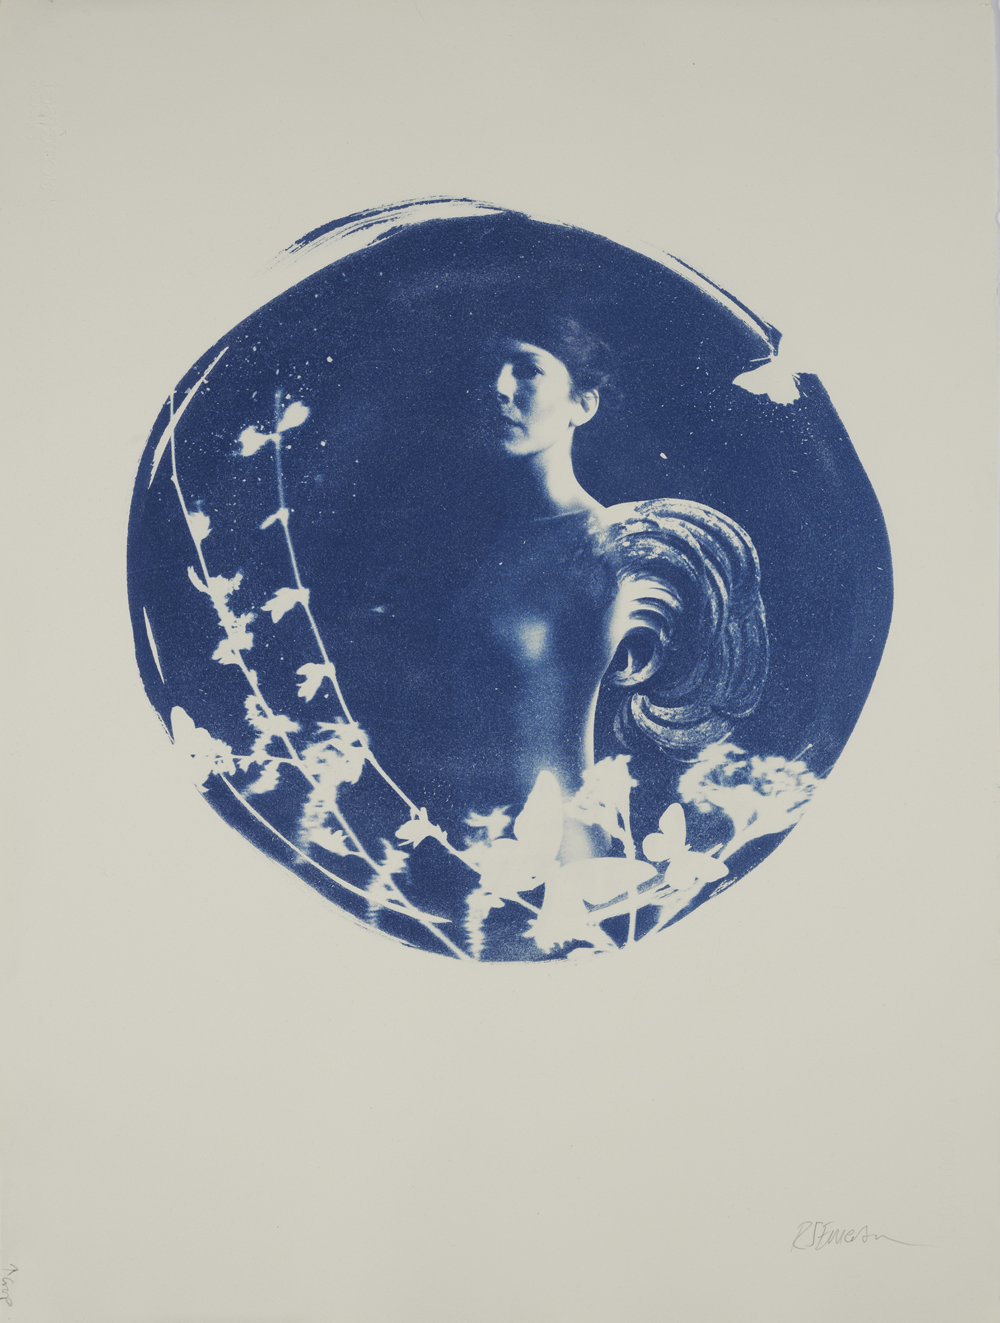 Aquila edition 1 of 2 by Rosie Emerson, Cyanotype on paper, 75 x 55 cm, £800 framed